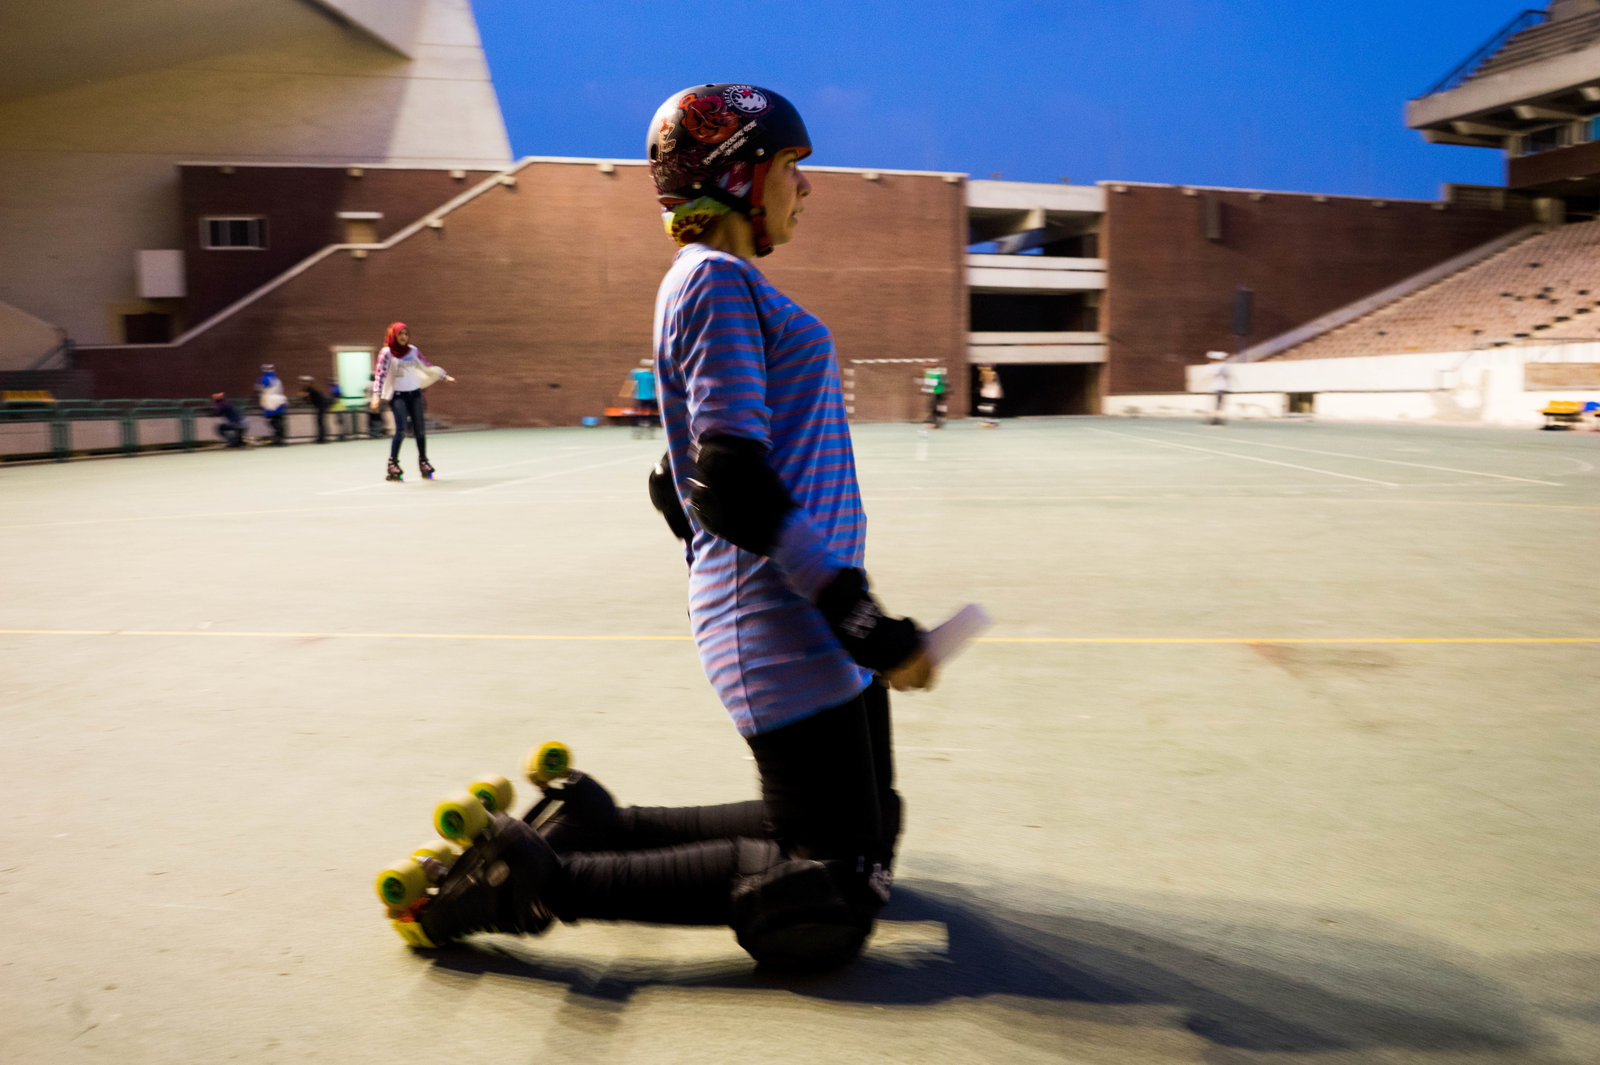 """Nouran El-Qabbany, 27, a graphic designer, demonstrates safety measures to new players. """"If you must fall, and you will fall, you should try to fall to the front not the back,"""" she says.Photo: Marwa Sameer Morgan"""